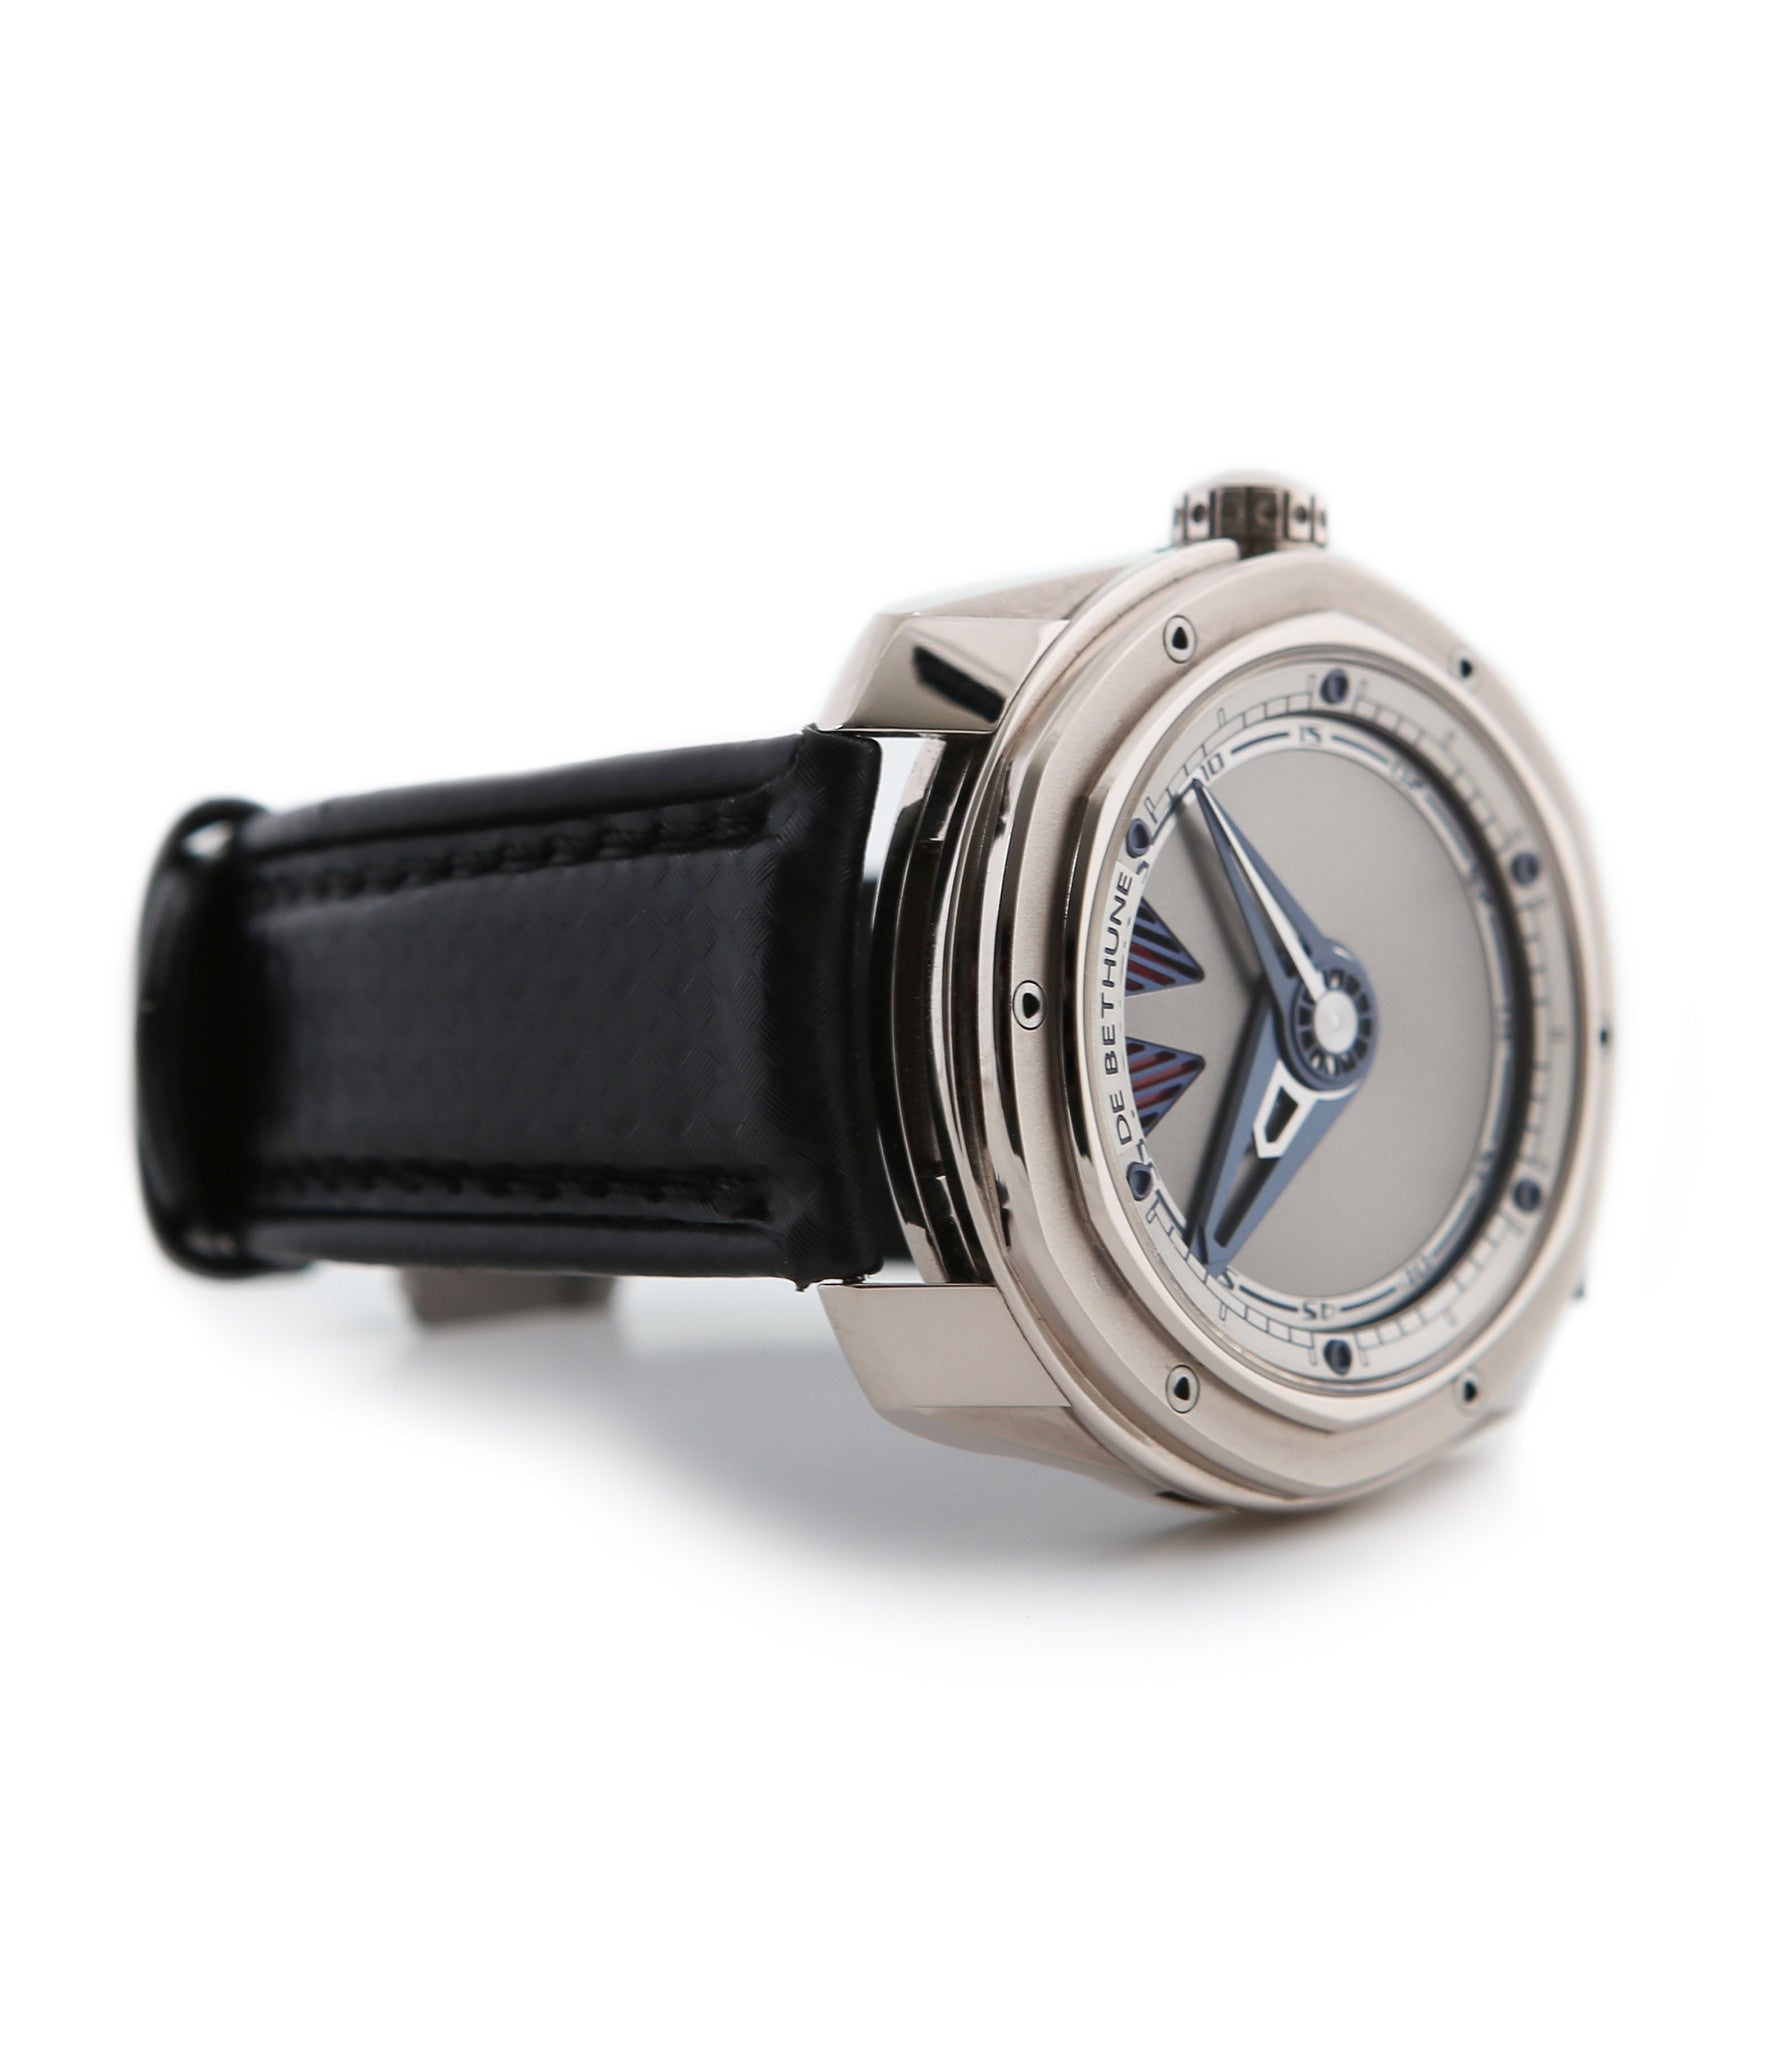 buy De Bethune DB22 power pre-owned watch online in white gold with power reserve from Swiss independent watchmaker  with authenticity guaranteed